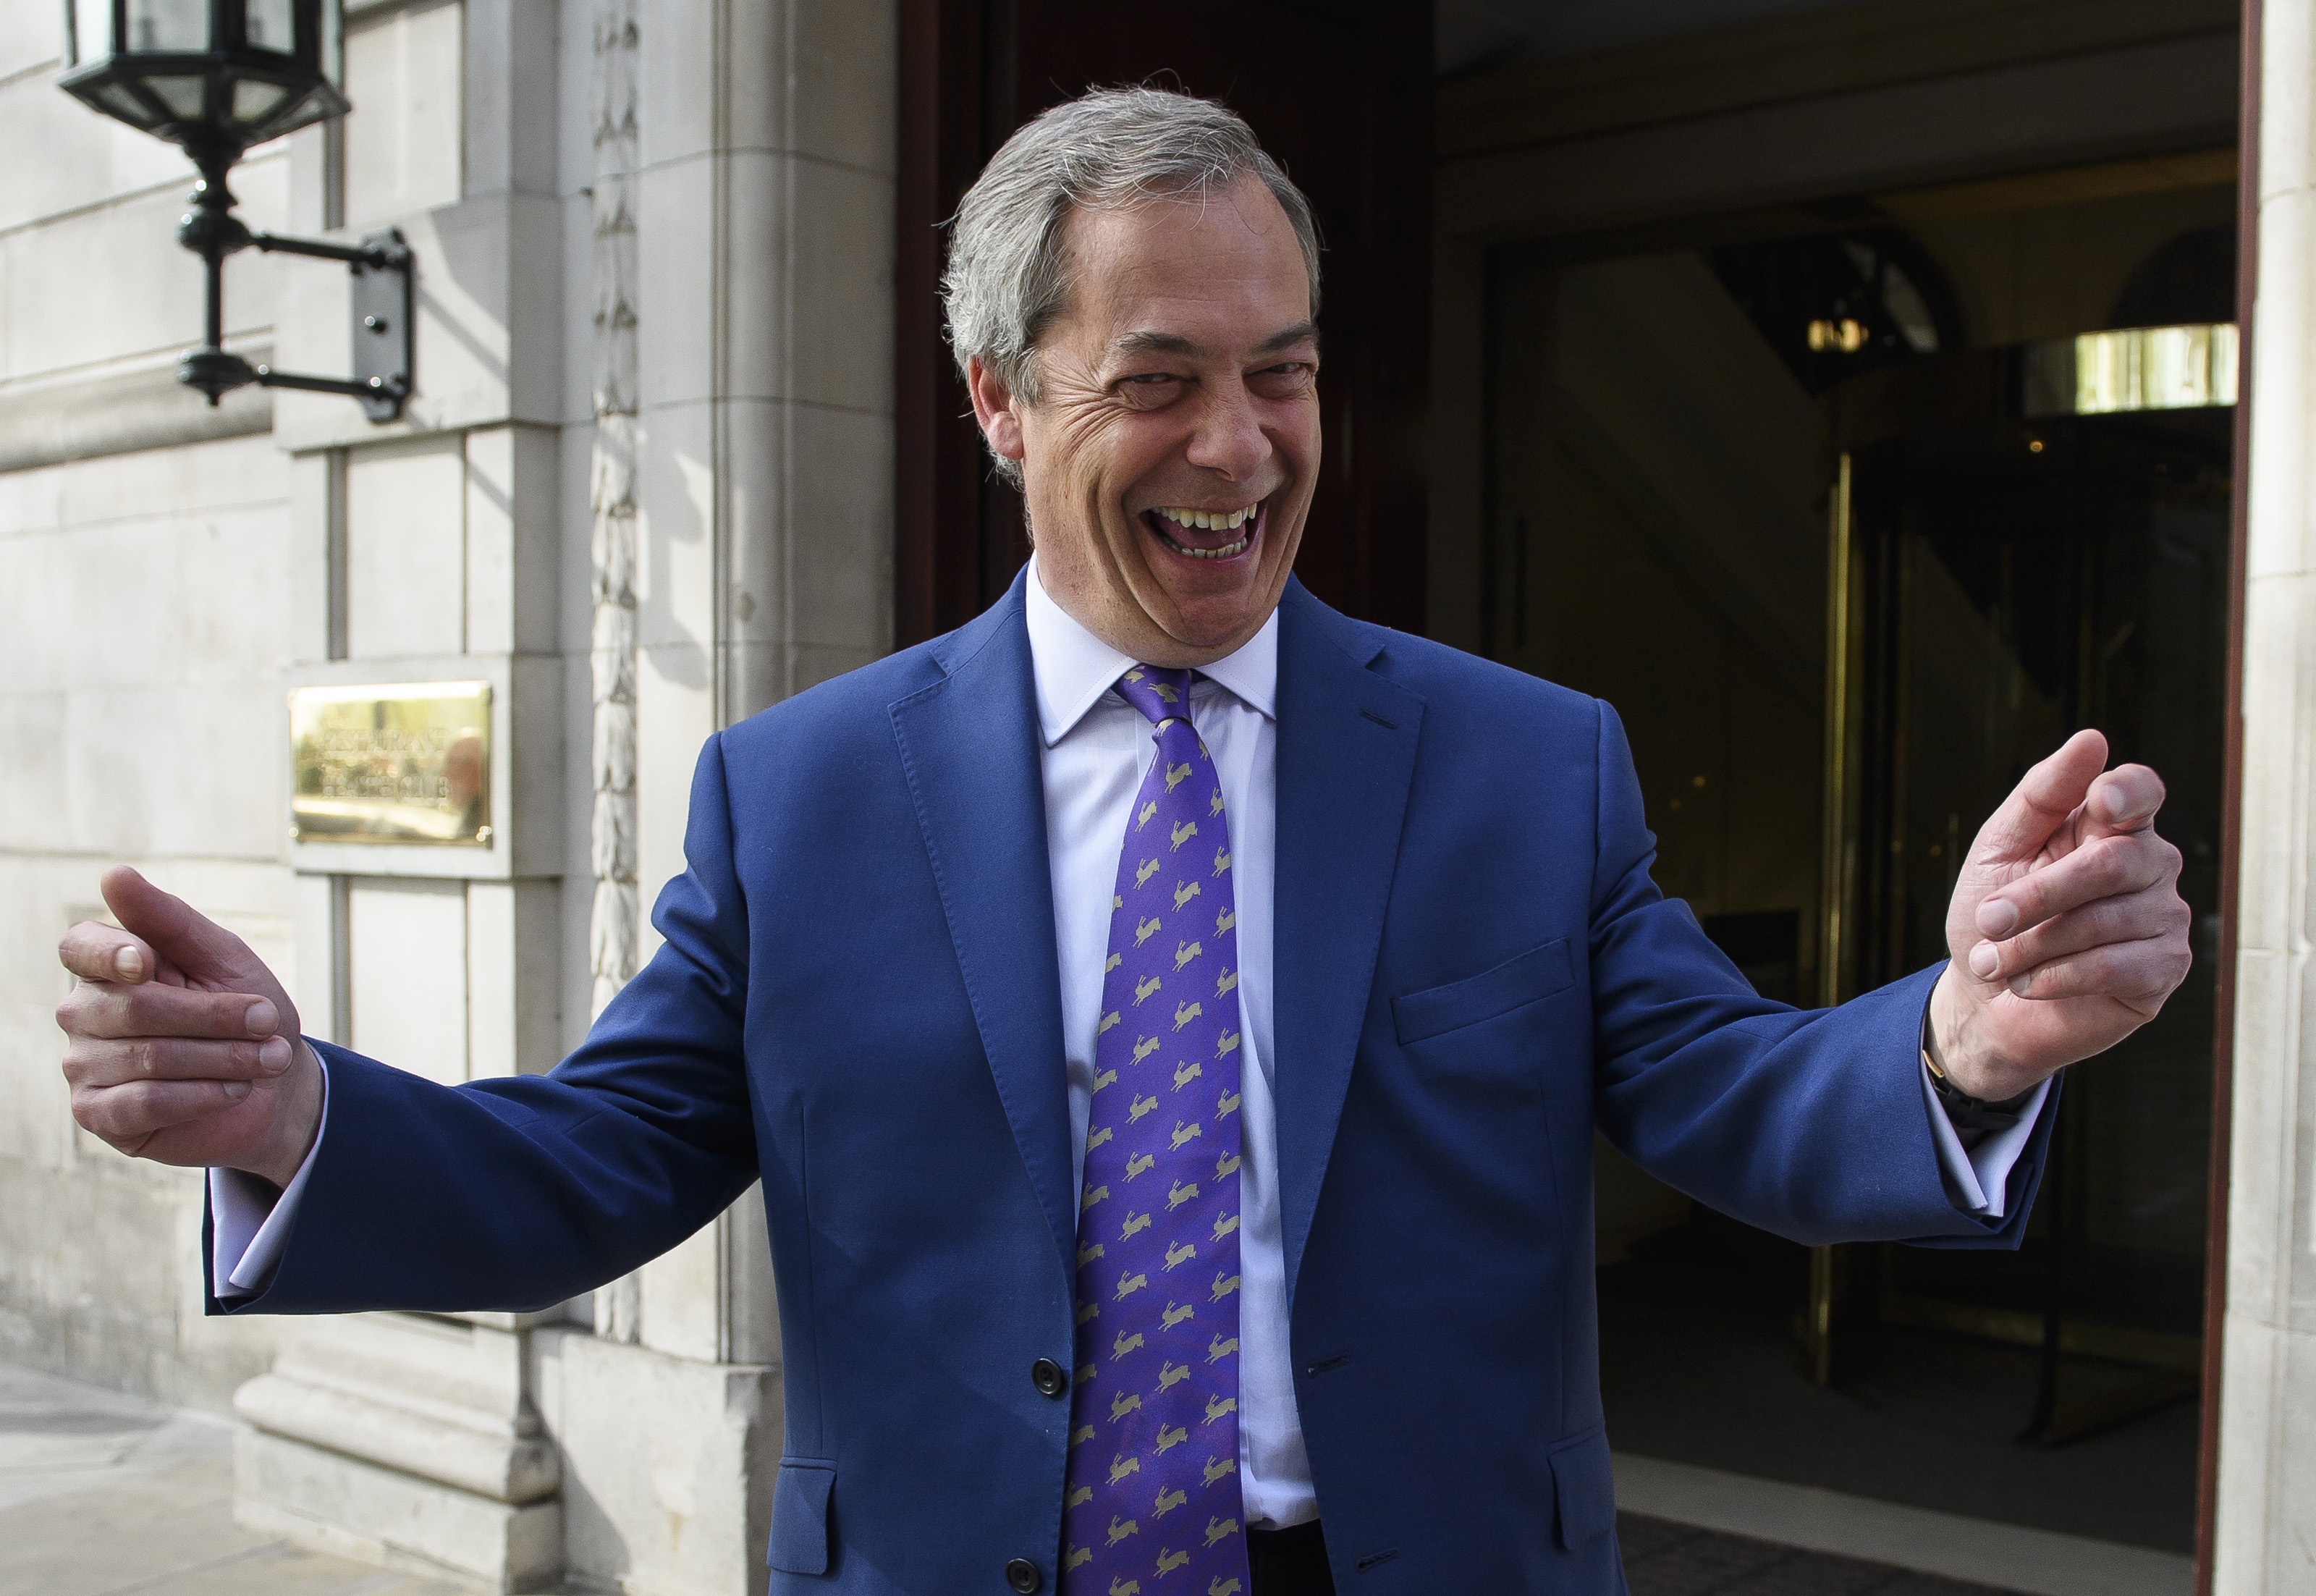 Farage says the Ukip movement' is growing as party claims first Welsh Assembly seats